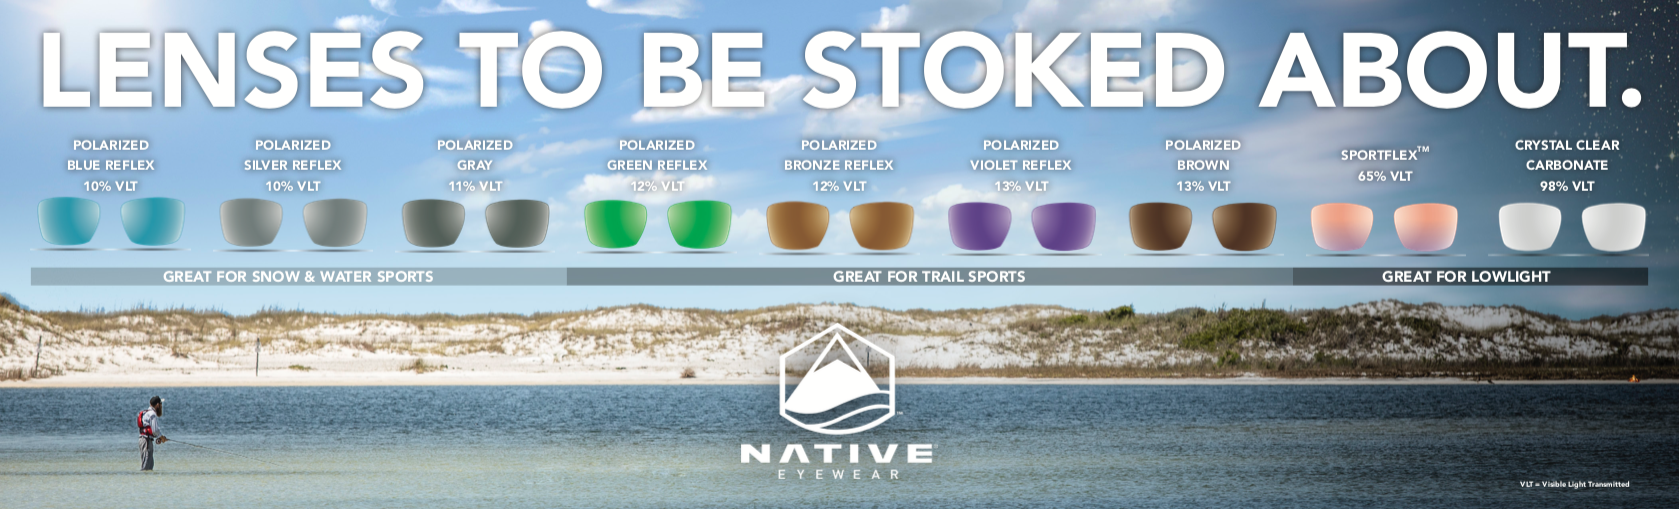 Native Eyewear Lens Chart